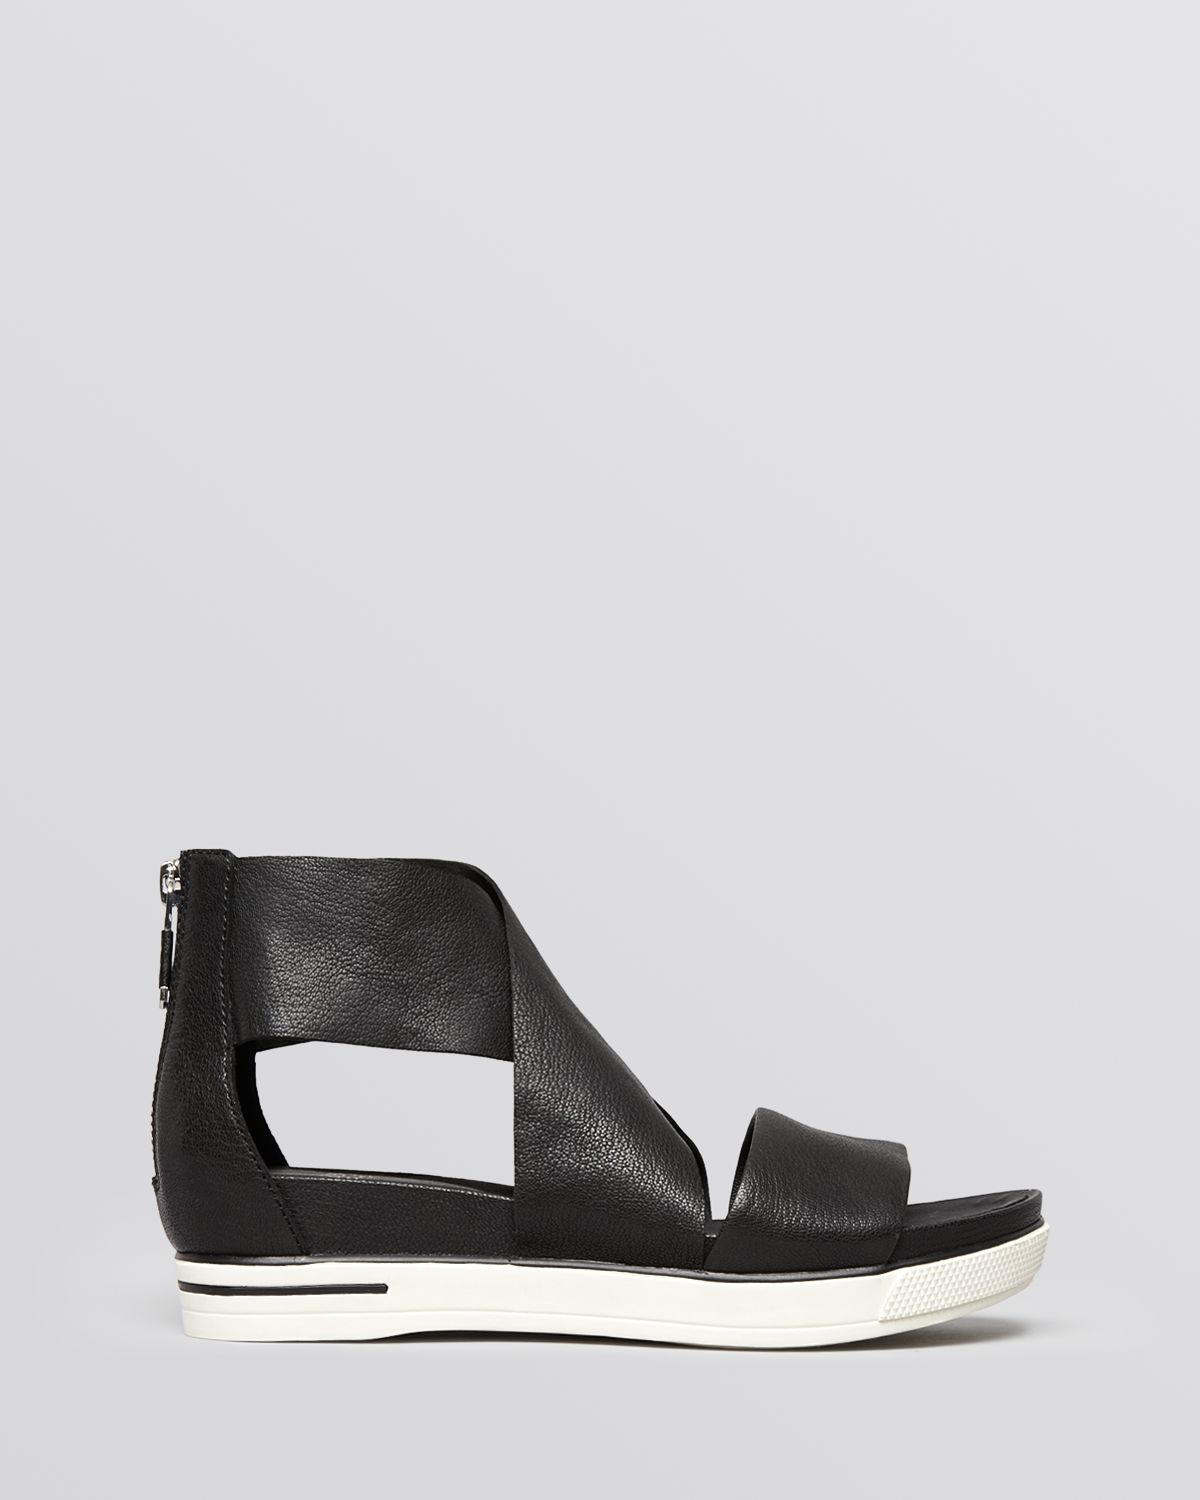 66e094df73b Gallery. Previously sold at  Bloomingdale s · Women s Eileen Fisher Platform  ...